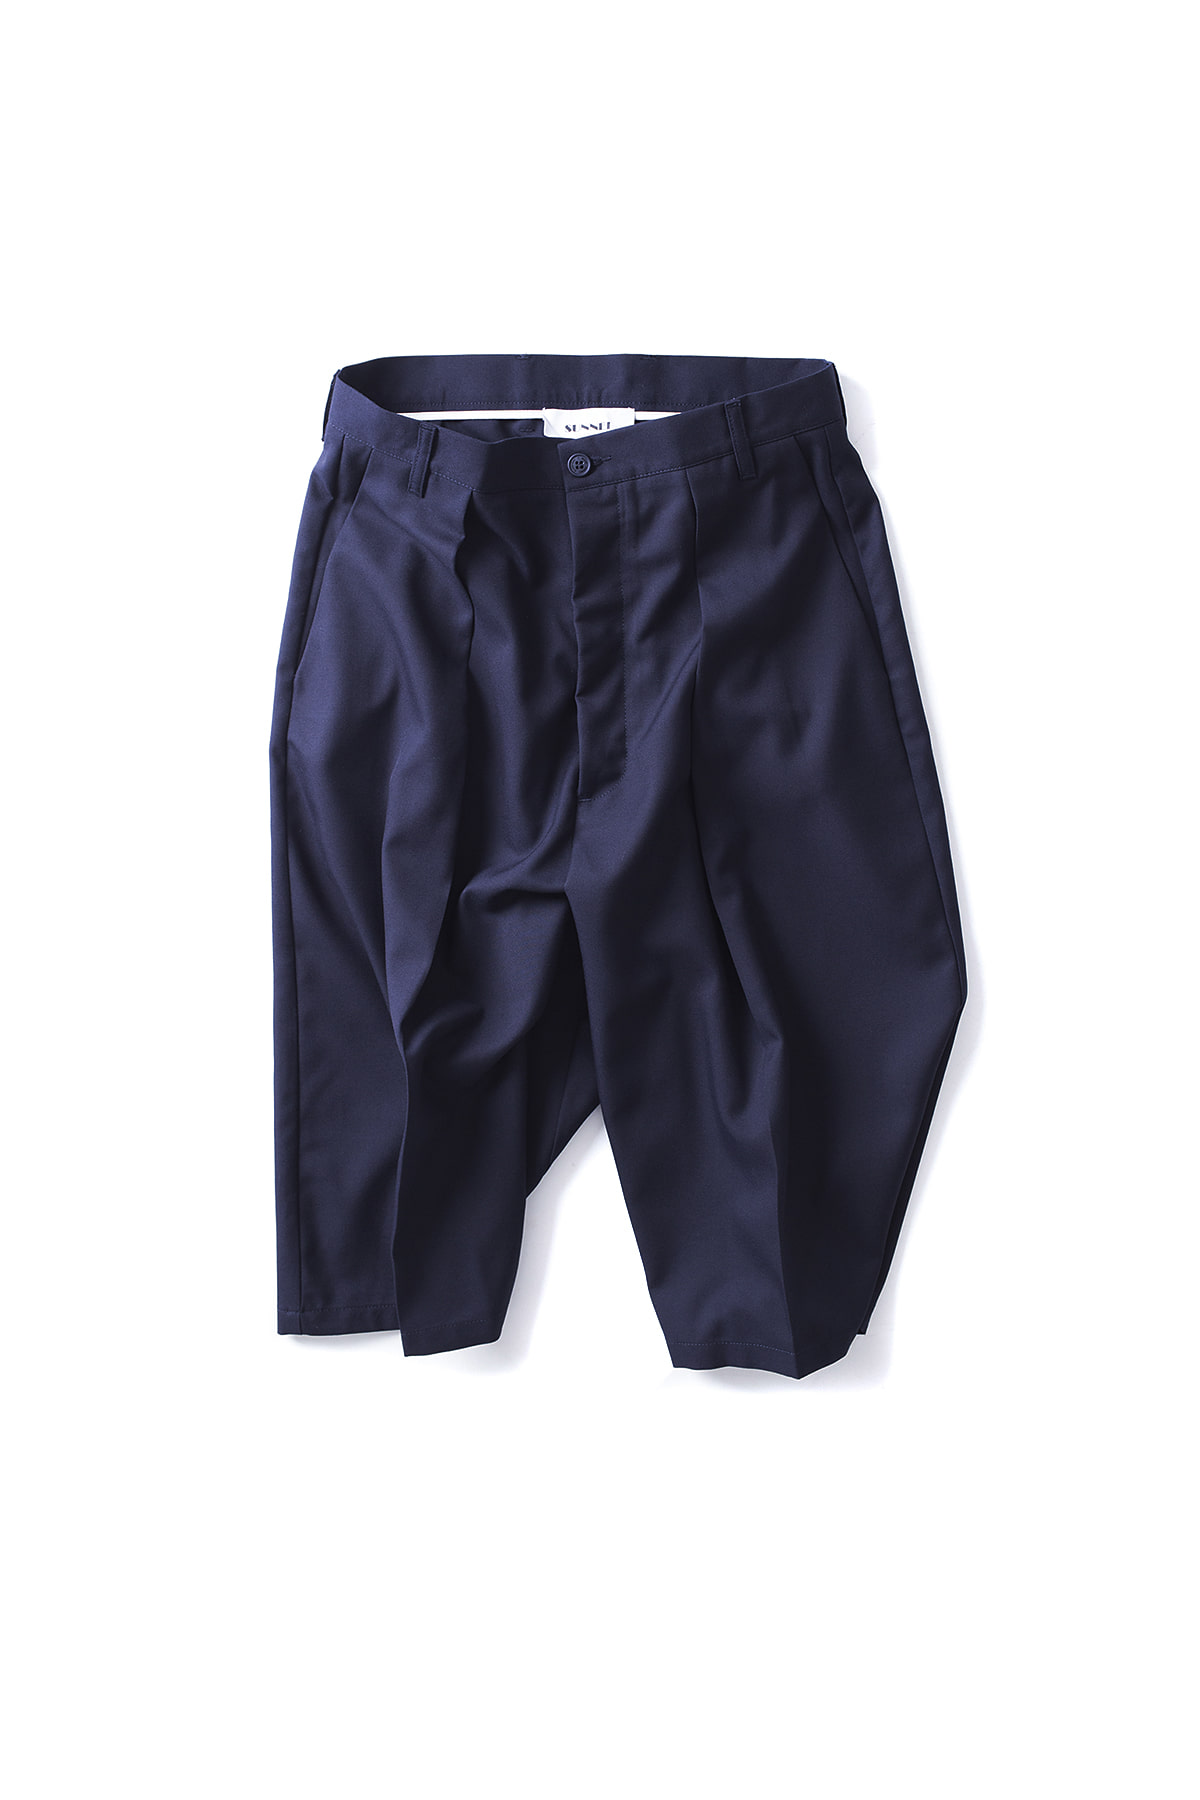 SUNNEI : Cholo Shorts (Dark Blue)